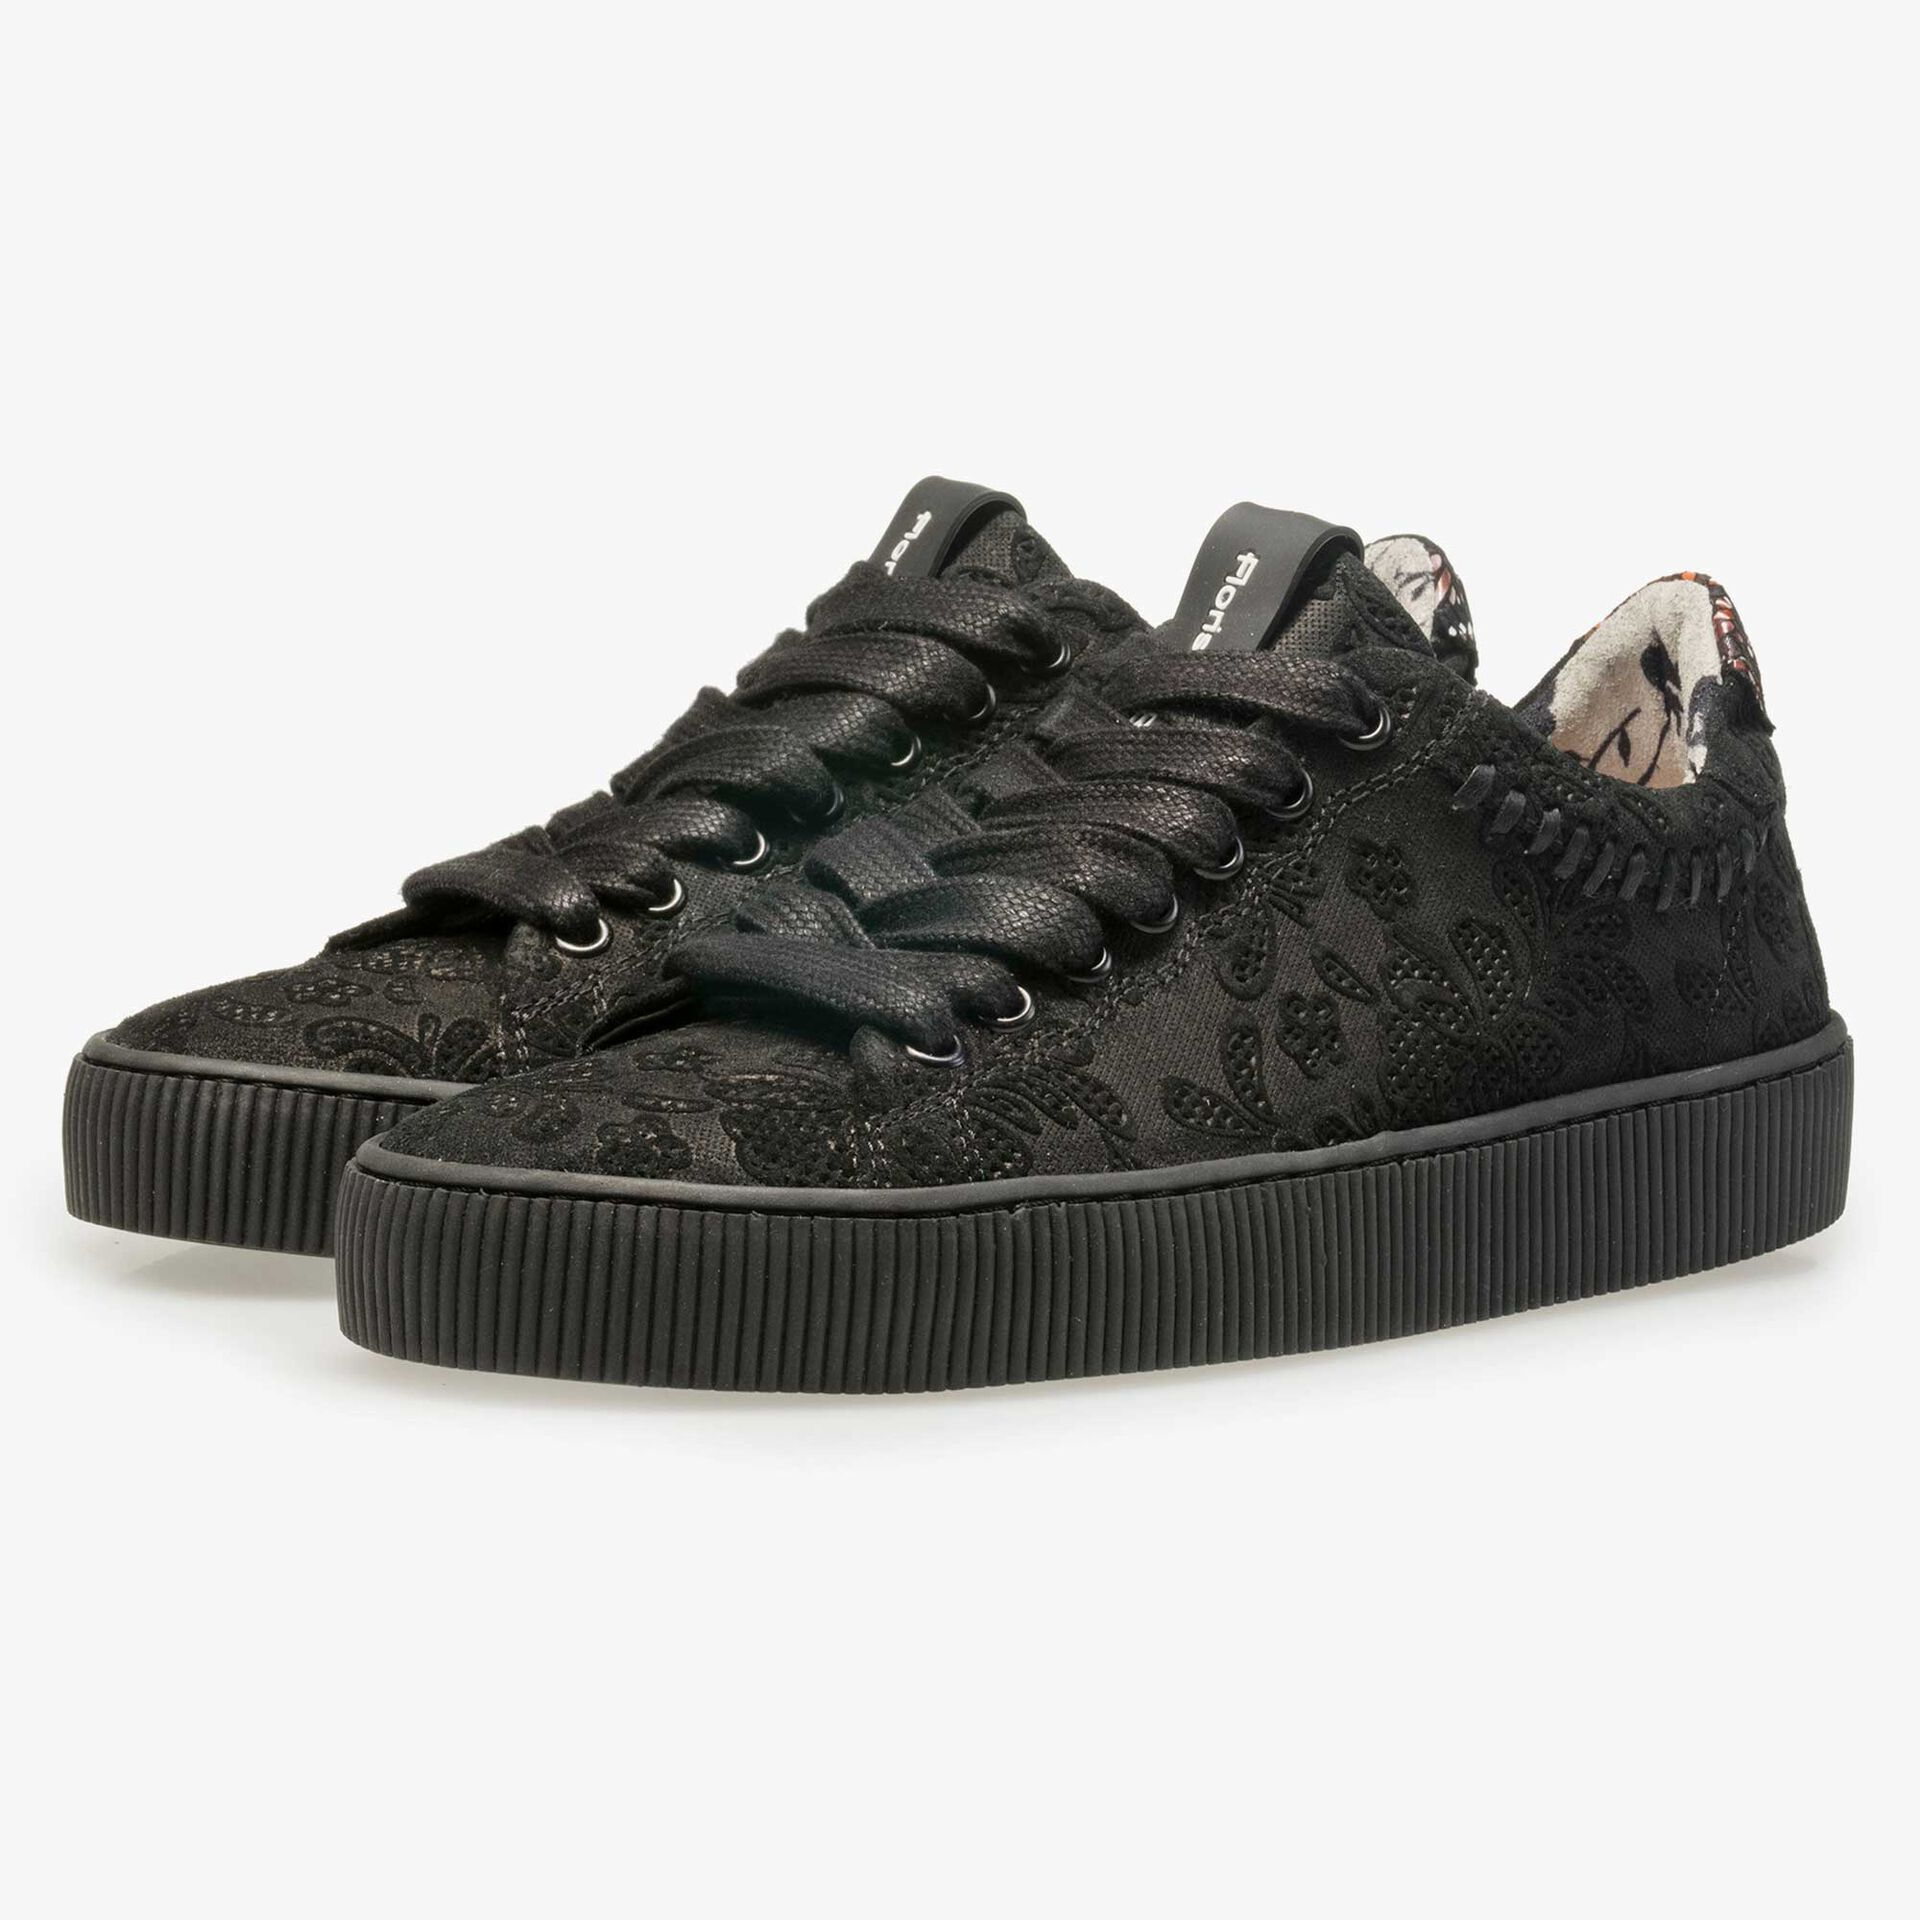 Floris van Bommel black suede leather sneaker